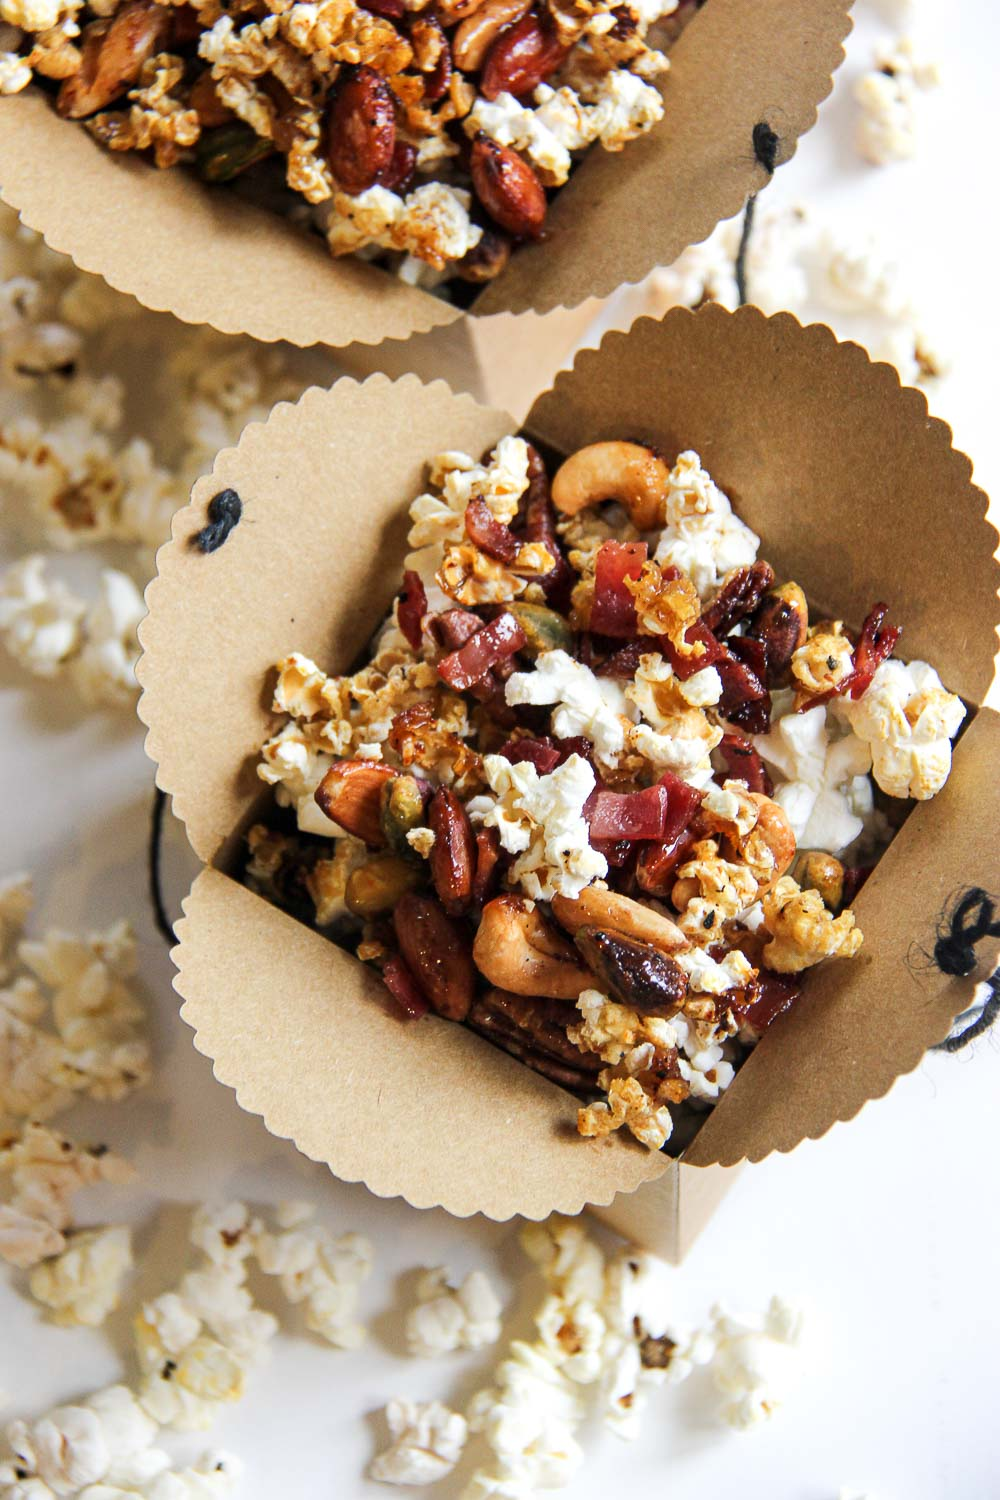 Make a batch of this sweet, crunchy, delicious homemade Bacon & Mixed Nuts Caramel Corn! It's highly addictive and perfect for parties, snacking, movie nights, and gifting.